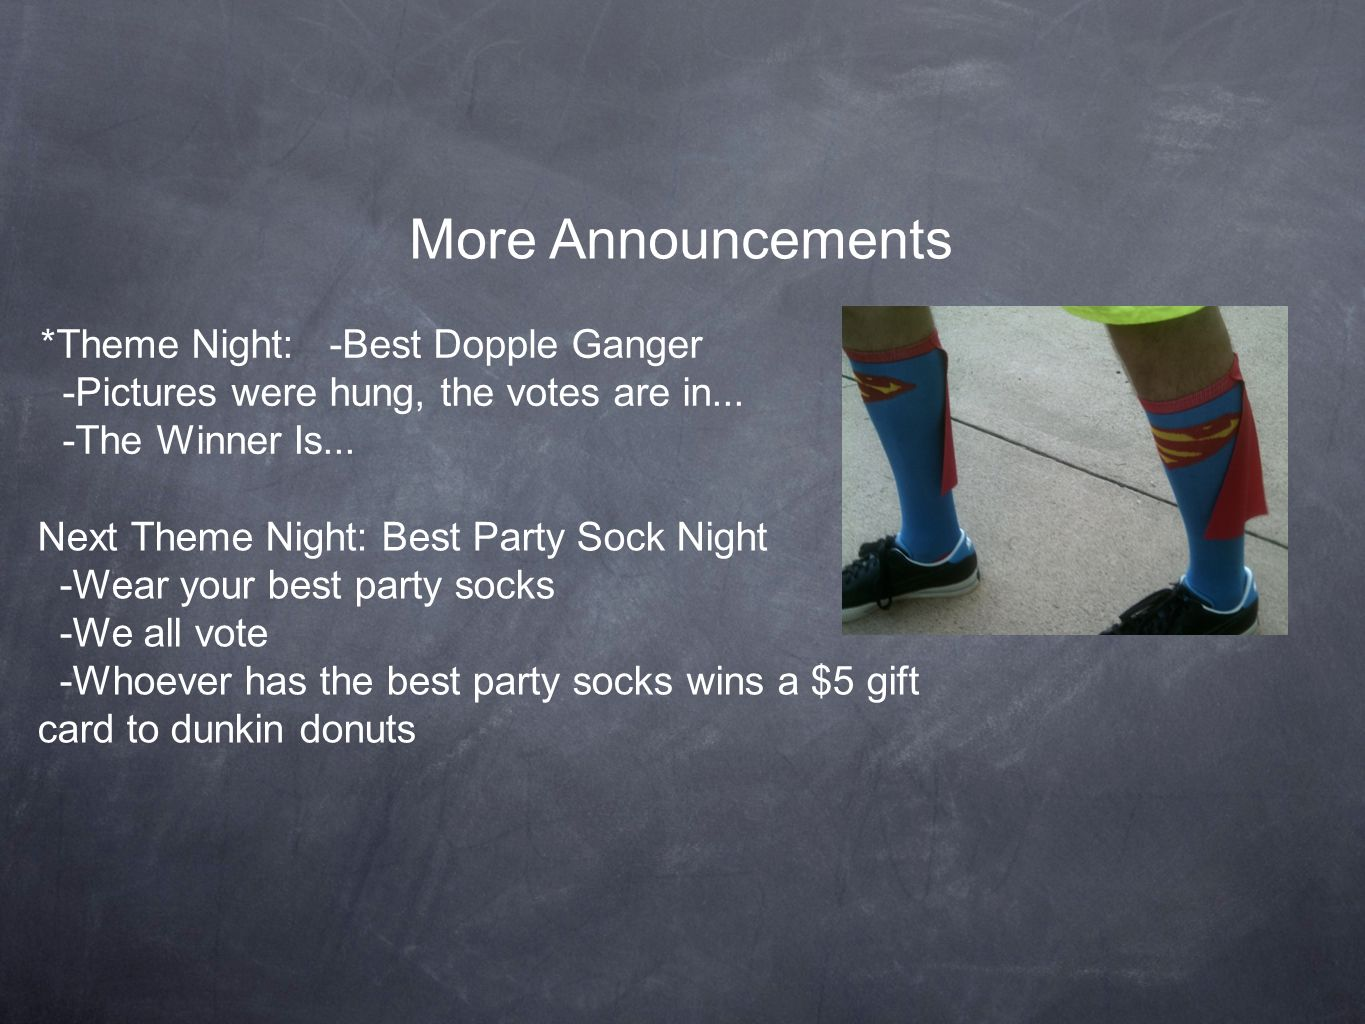 More Announcements Next Theme Night: Best Party Sock Night -Wear your best party socks -We all vote -Whoever has the best party socks wins a $5 gift c